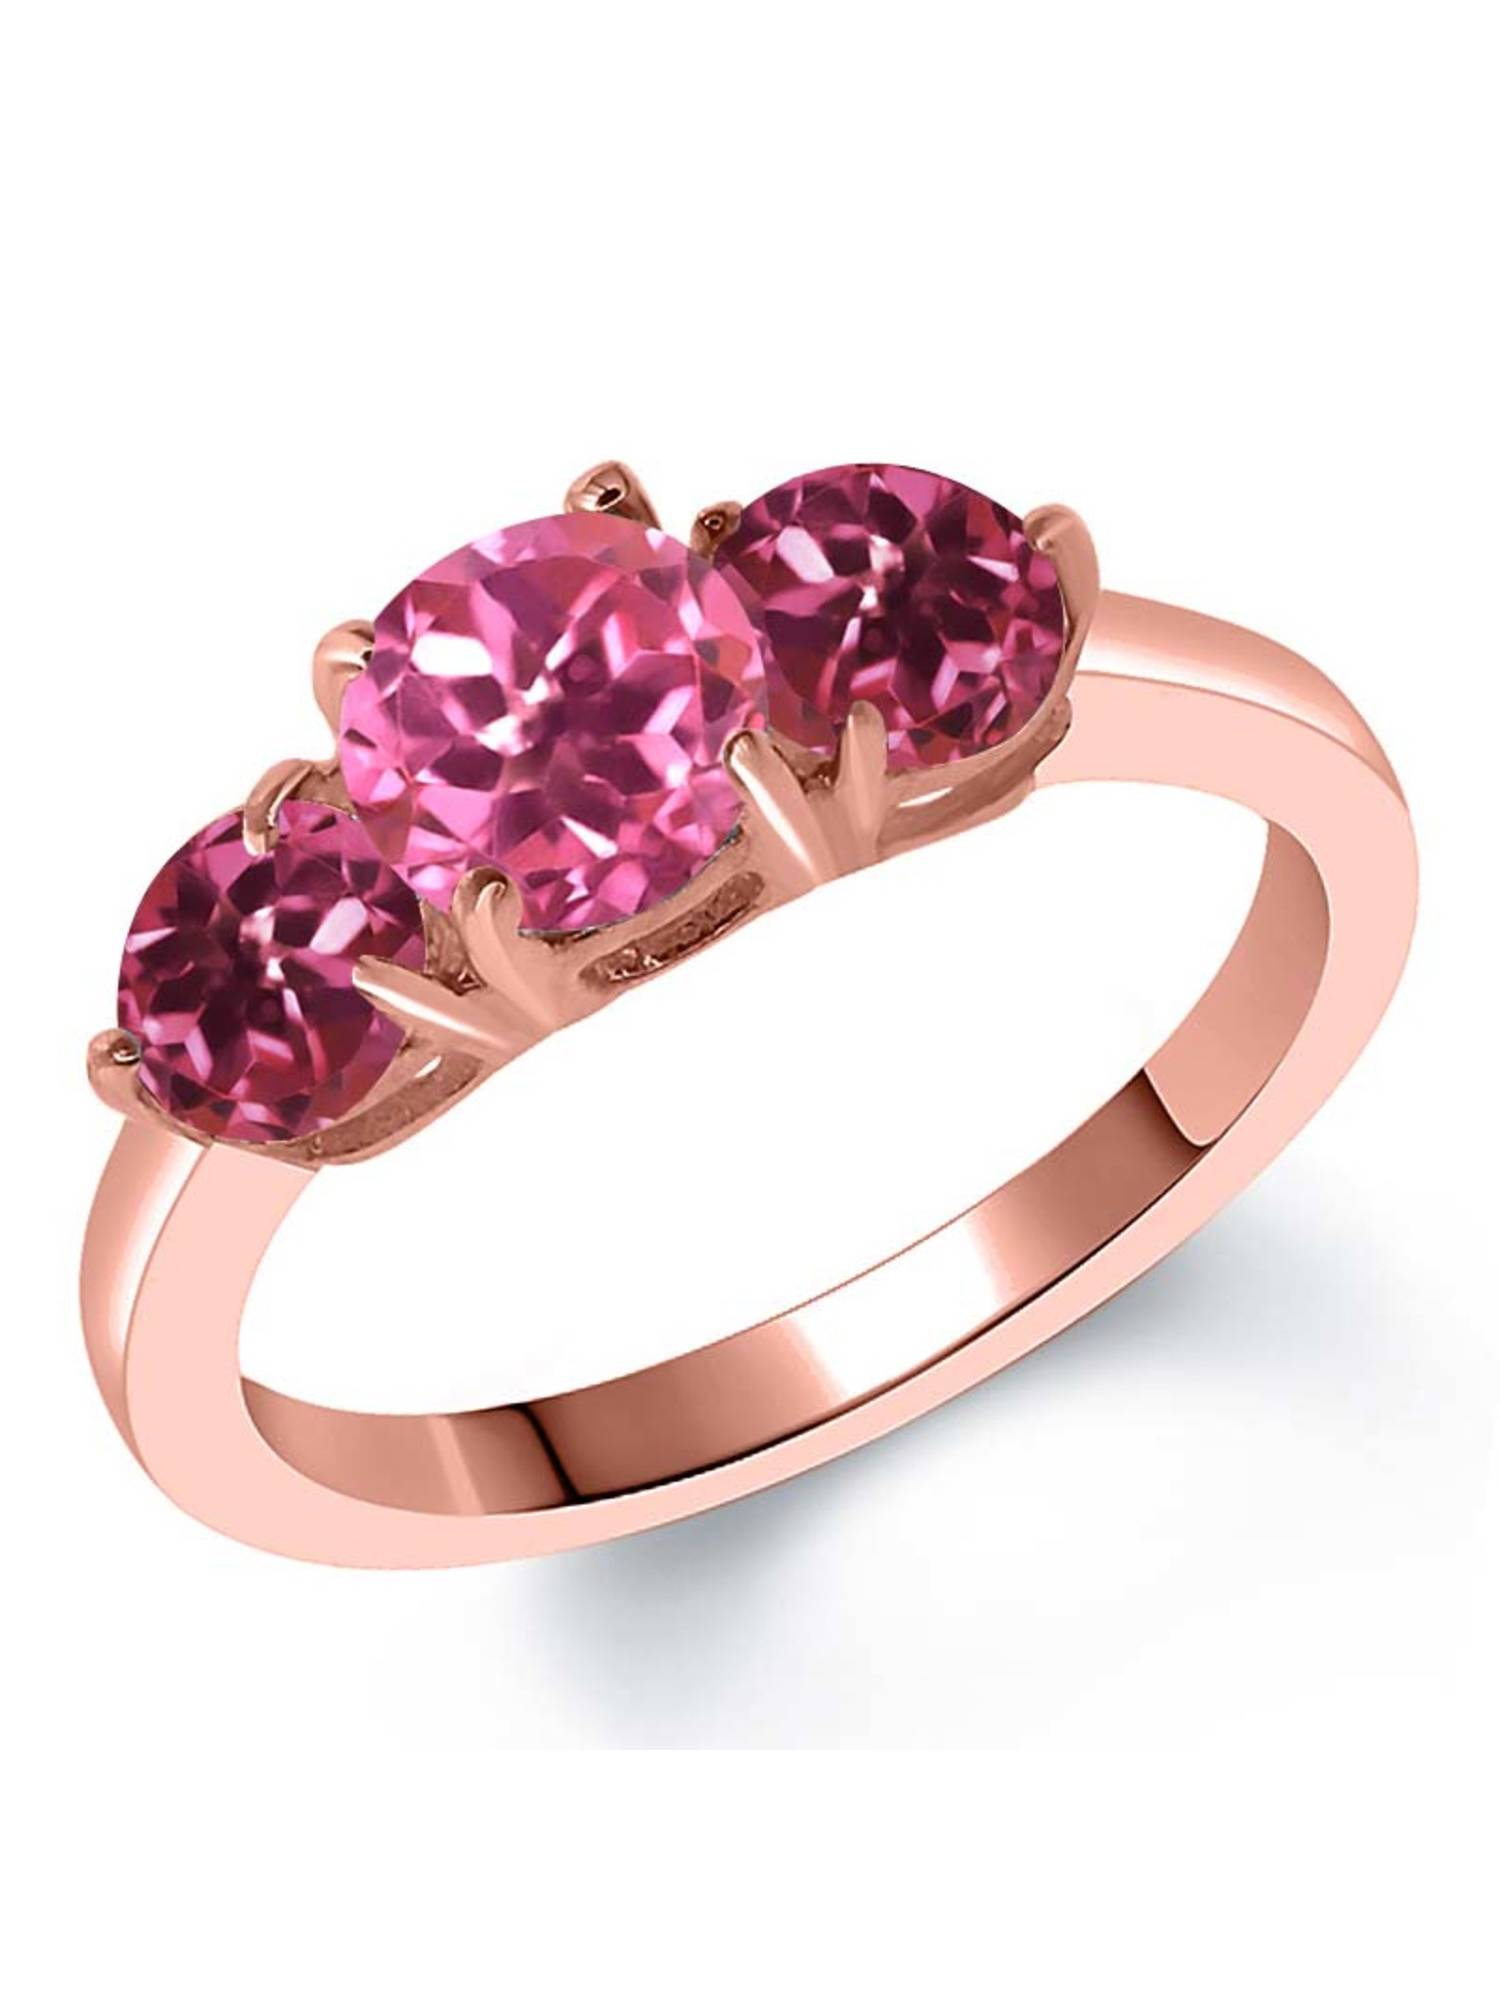 2.00 Ct Round Pink Mystic Topaz Pink Tourmaline 18K Rose Gold Plated Silver Ring by